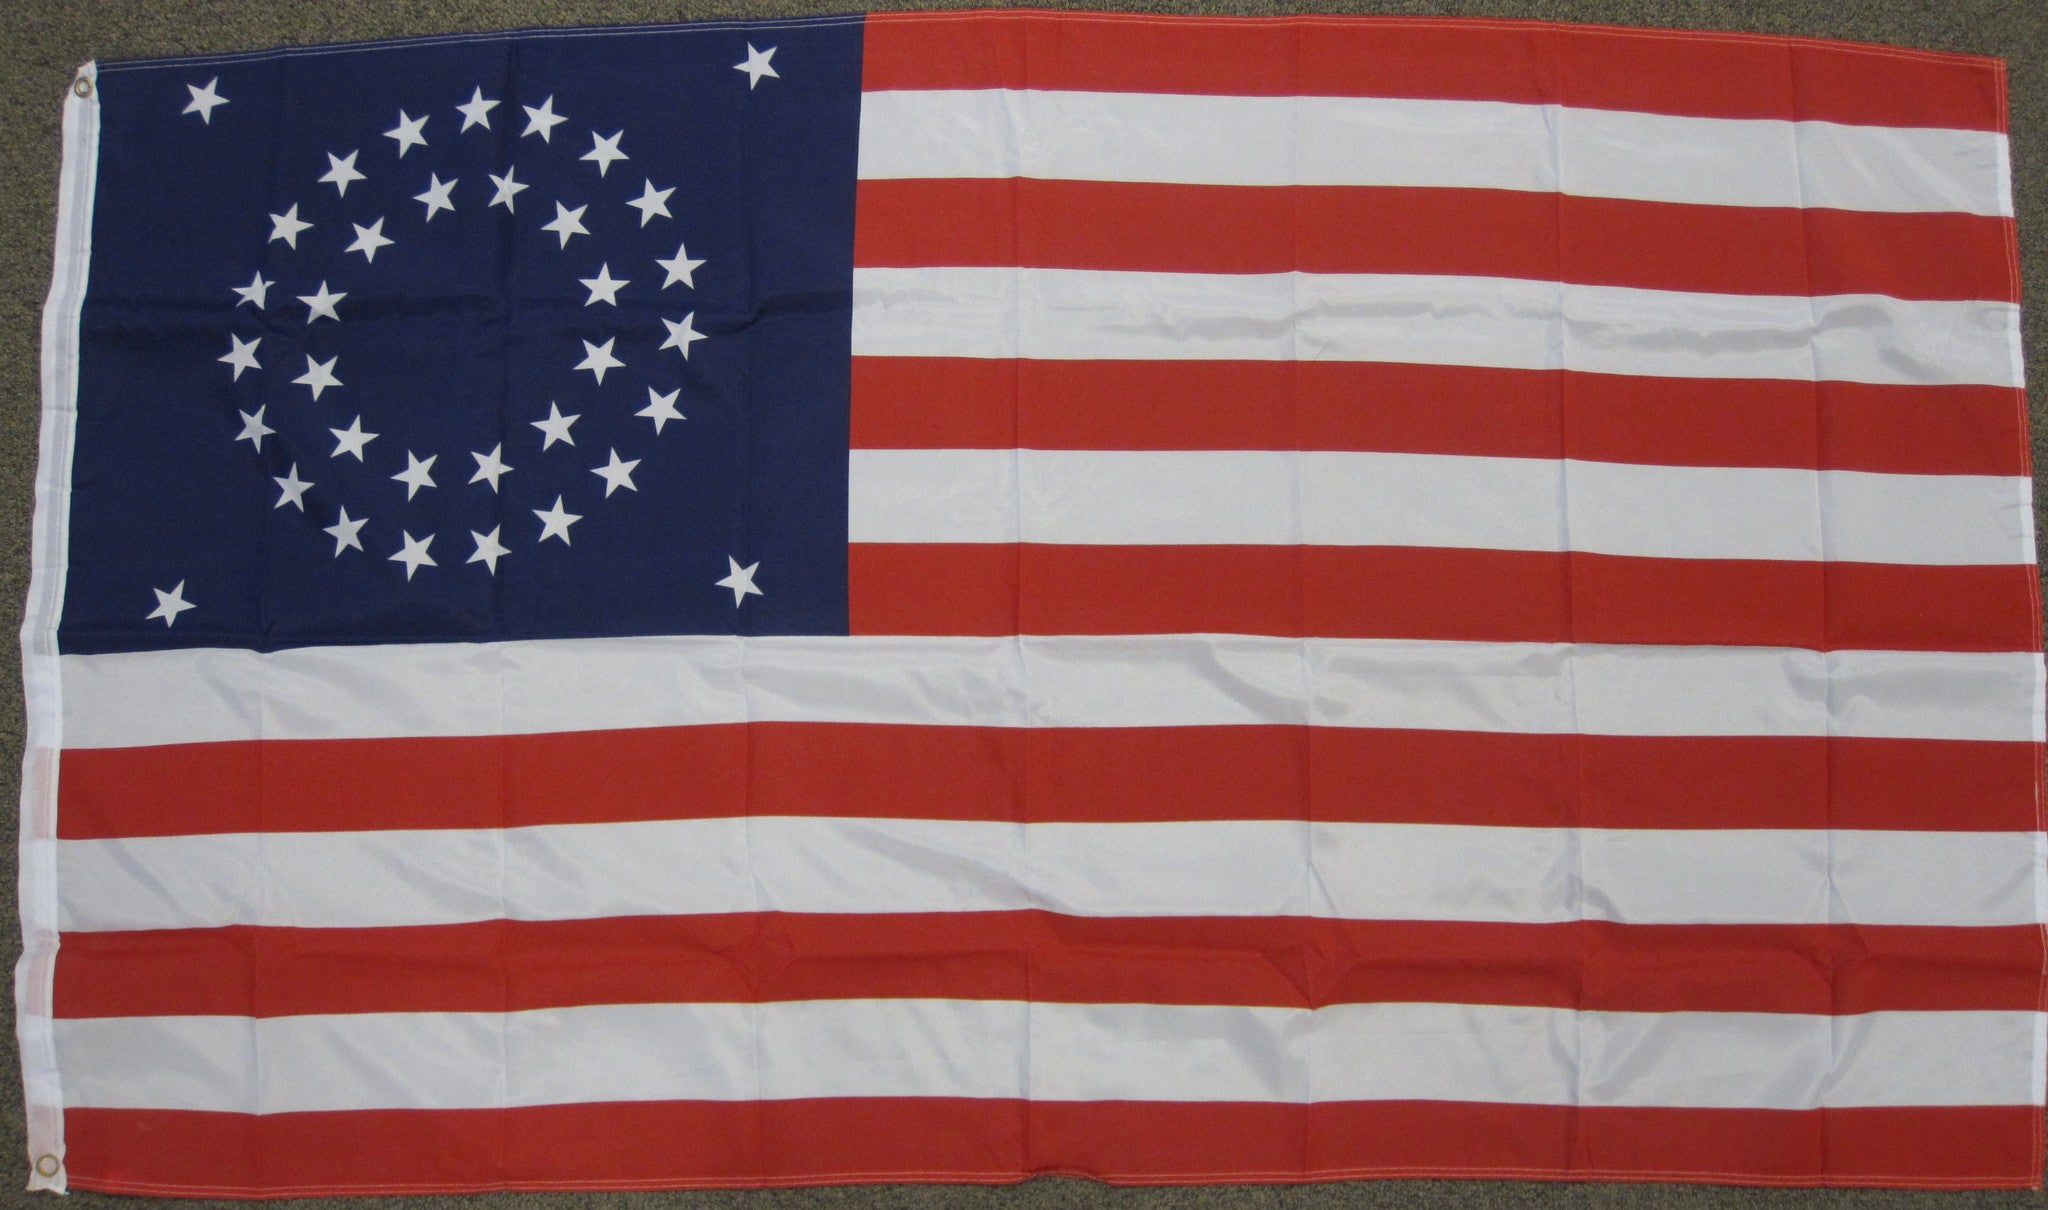 3'X5' 35 STAR USA Polyester Flag American Civil WAR